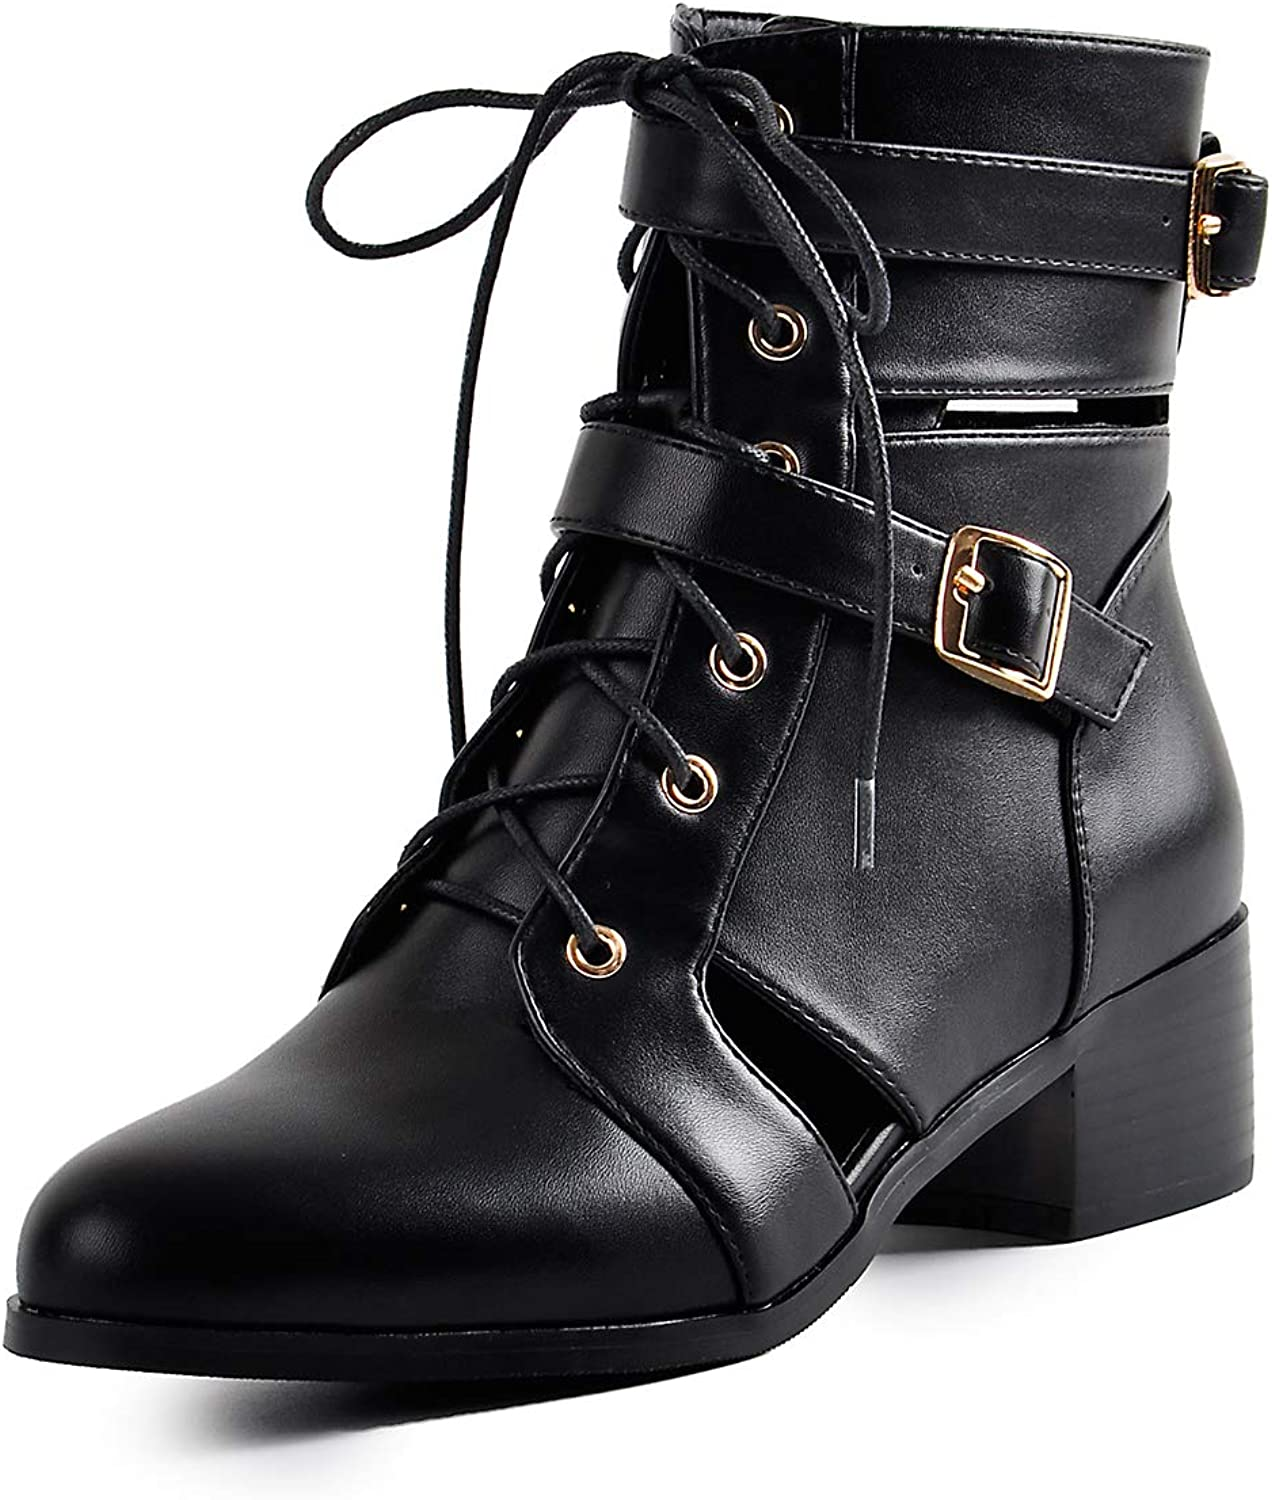 Onlymaker Womens Fashion Low Block Heel Ankle Boots Snakeskin Pattern Cut Out Buckle Strap Lace-up Martin Bootie Motorcycle Boots Black